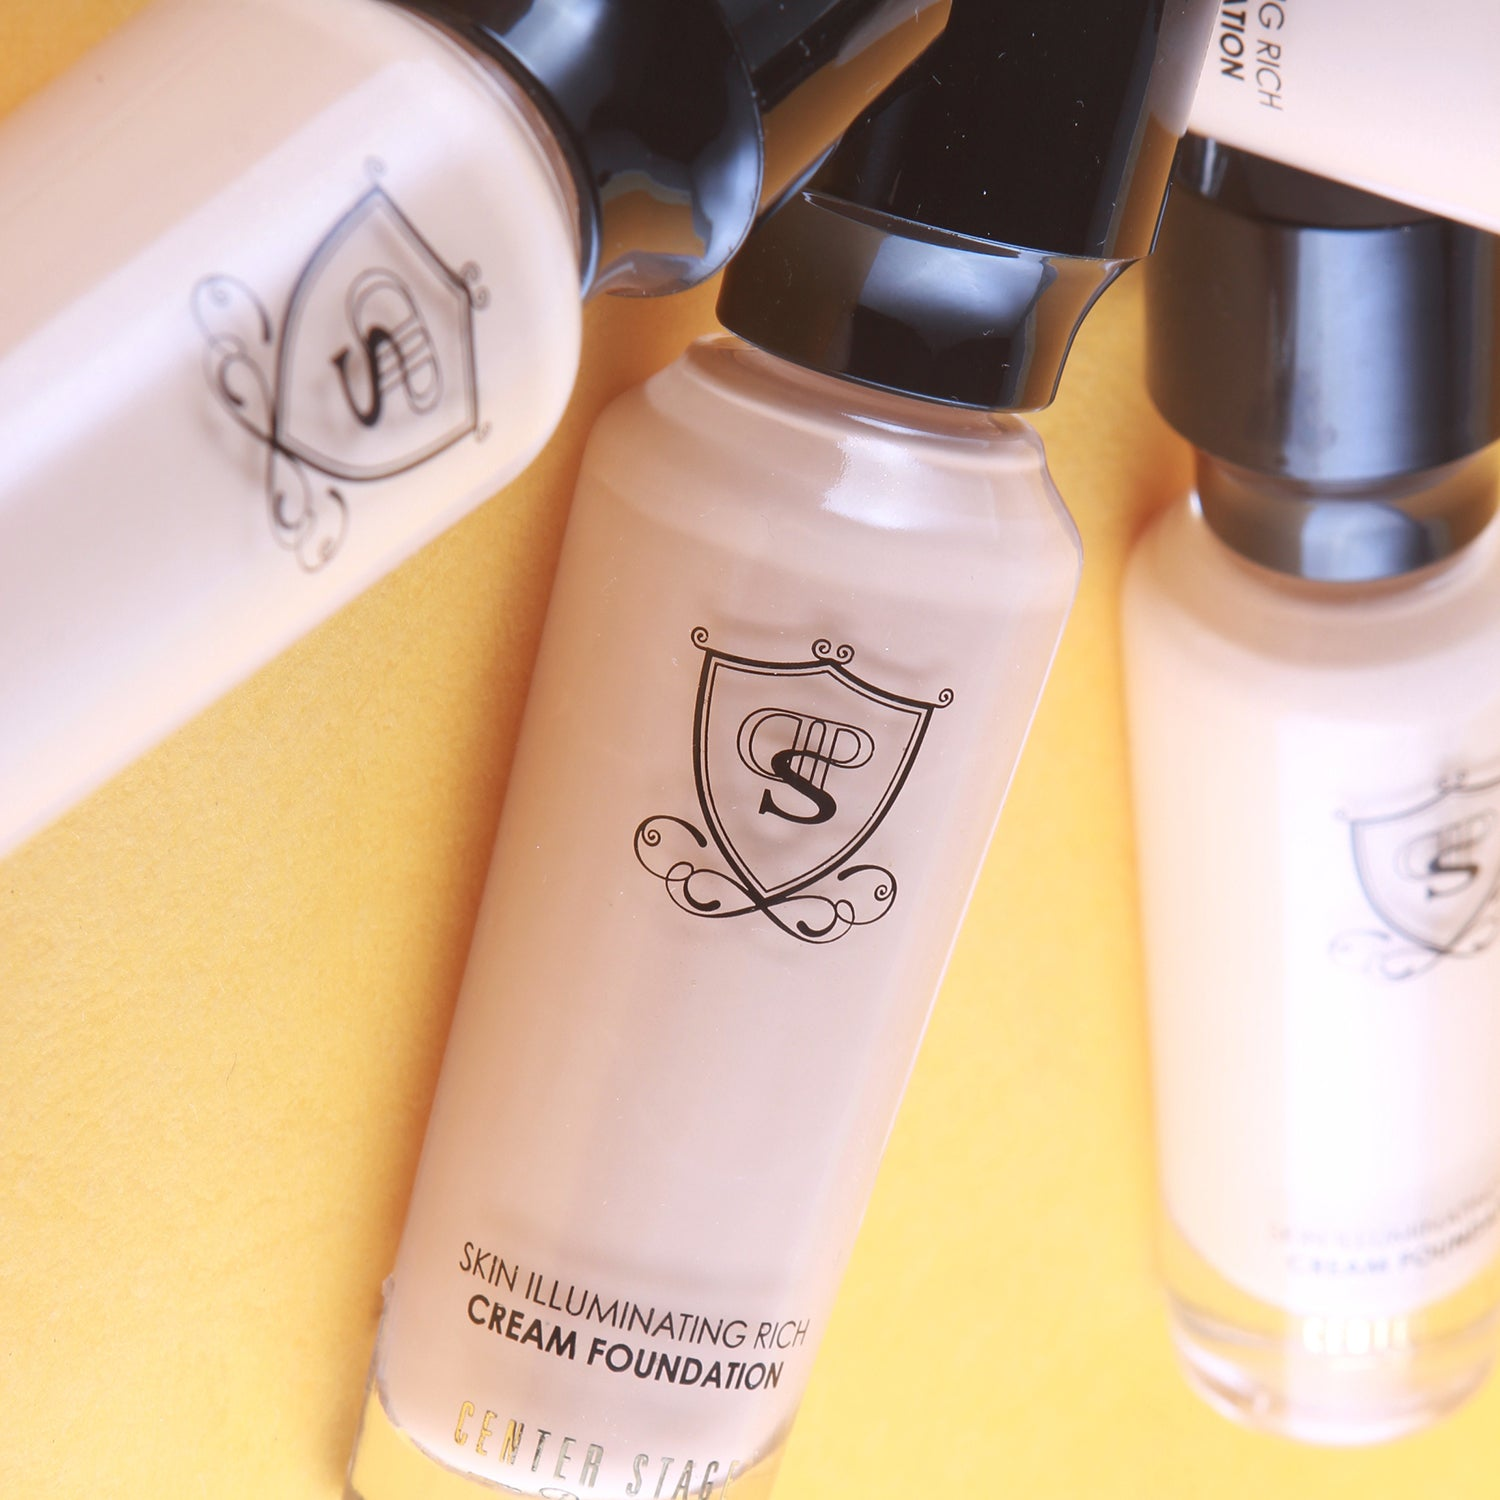 Skin Illuminating Rich Cream Foundation